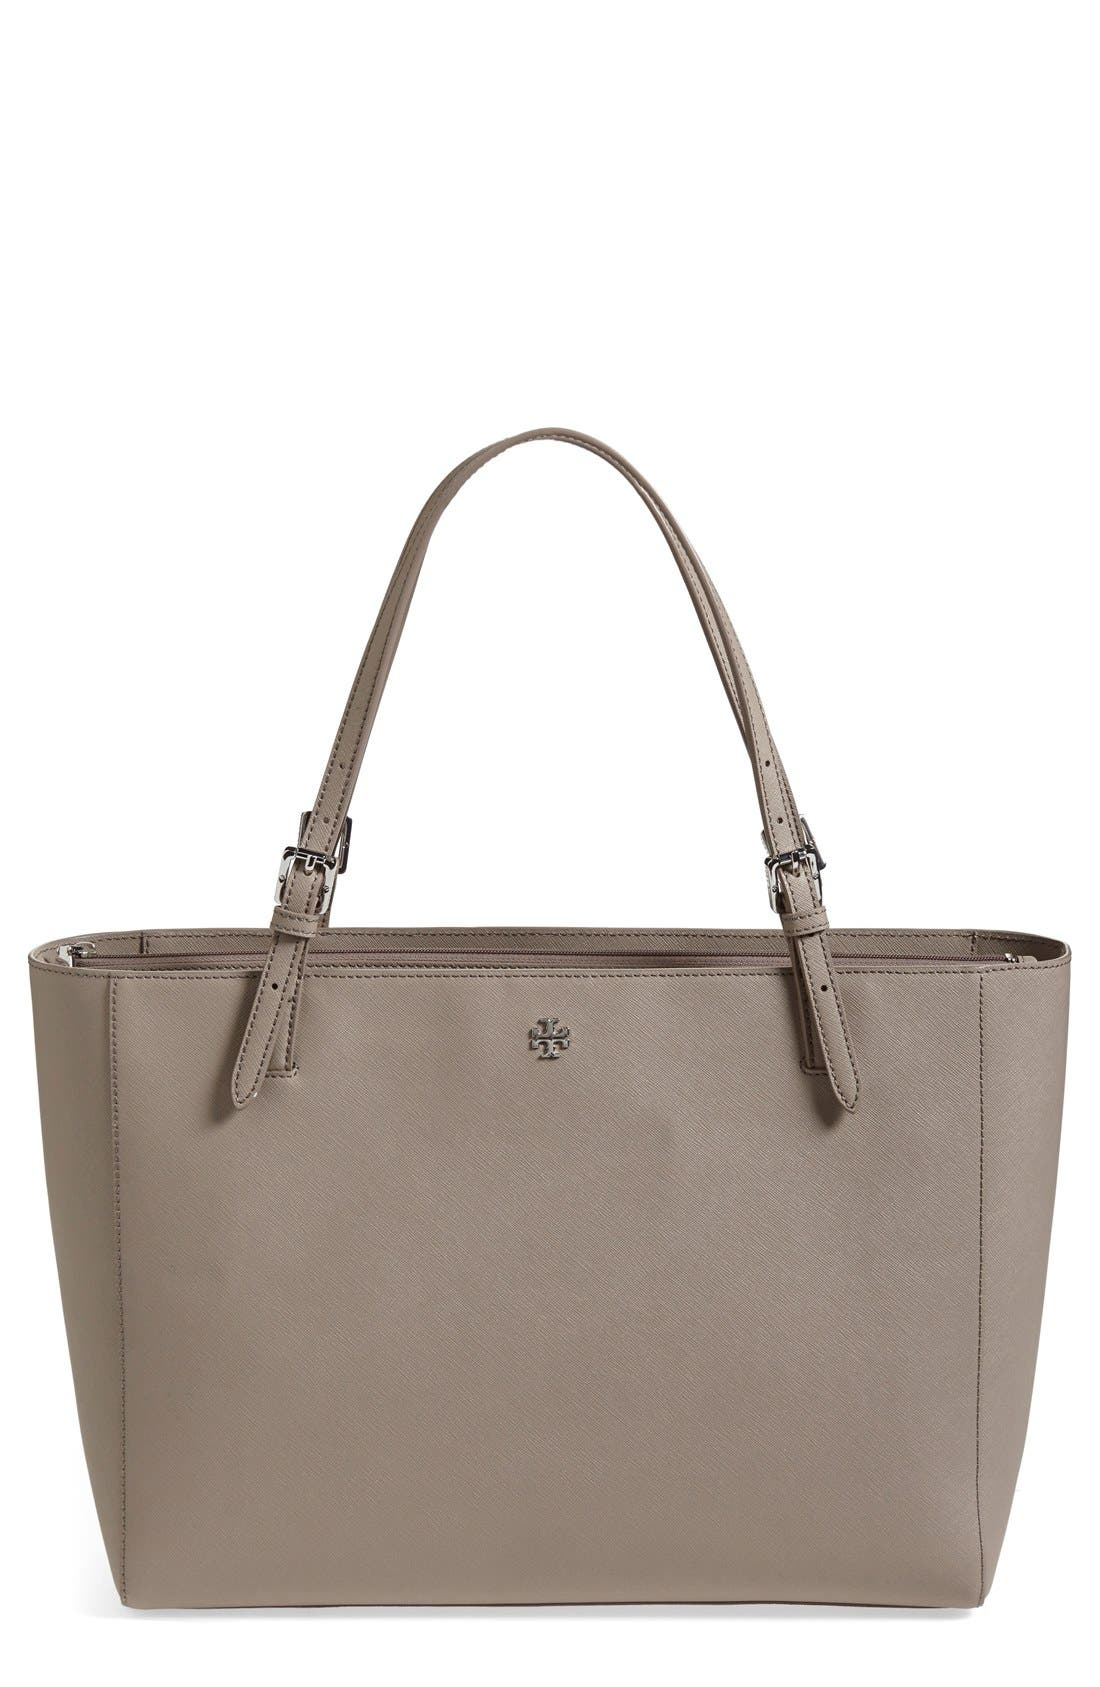 TORY BURCH, 'York' Buckle Tote, Main thumbnail 1, color, 020